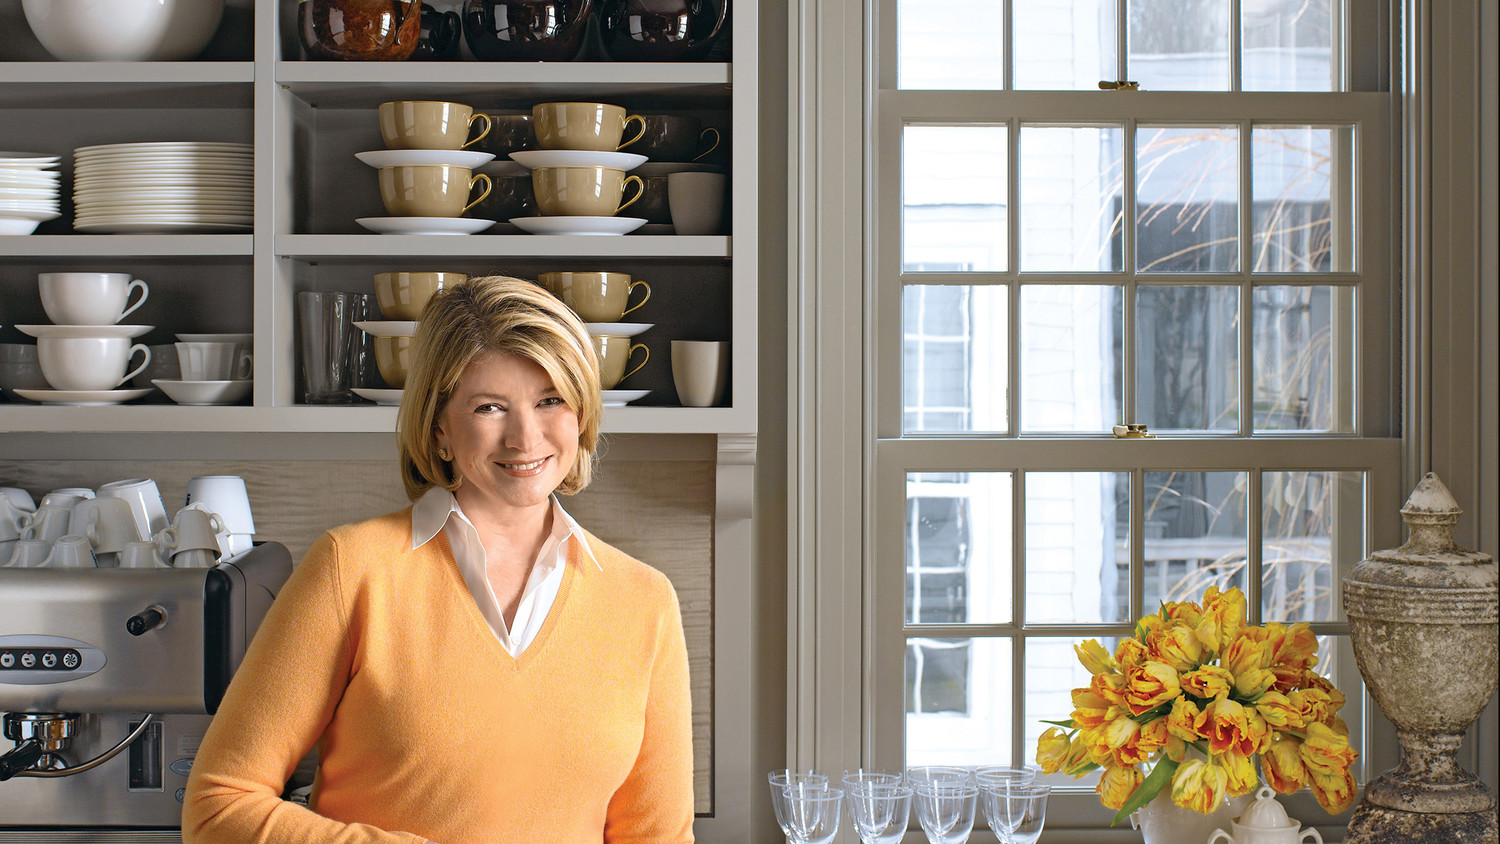 Marthas Top Kitchen Tips Martha Stewart - How to organize kitchen cabinets martha stewart